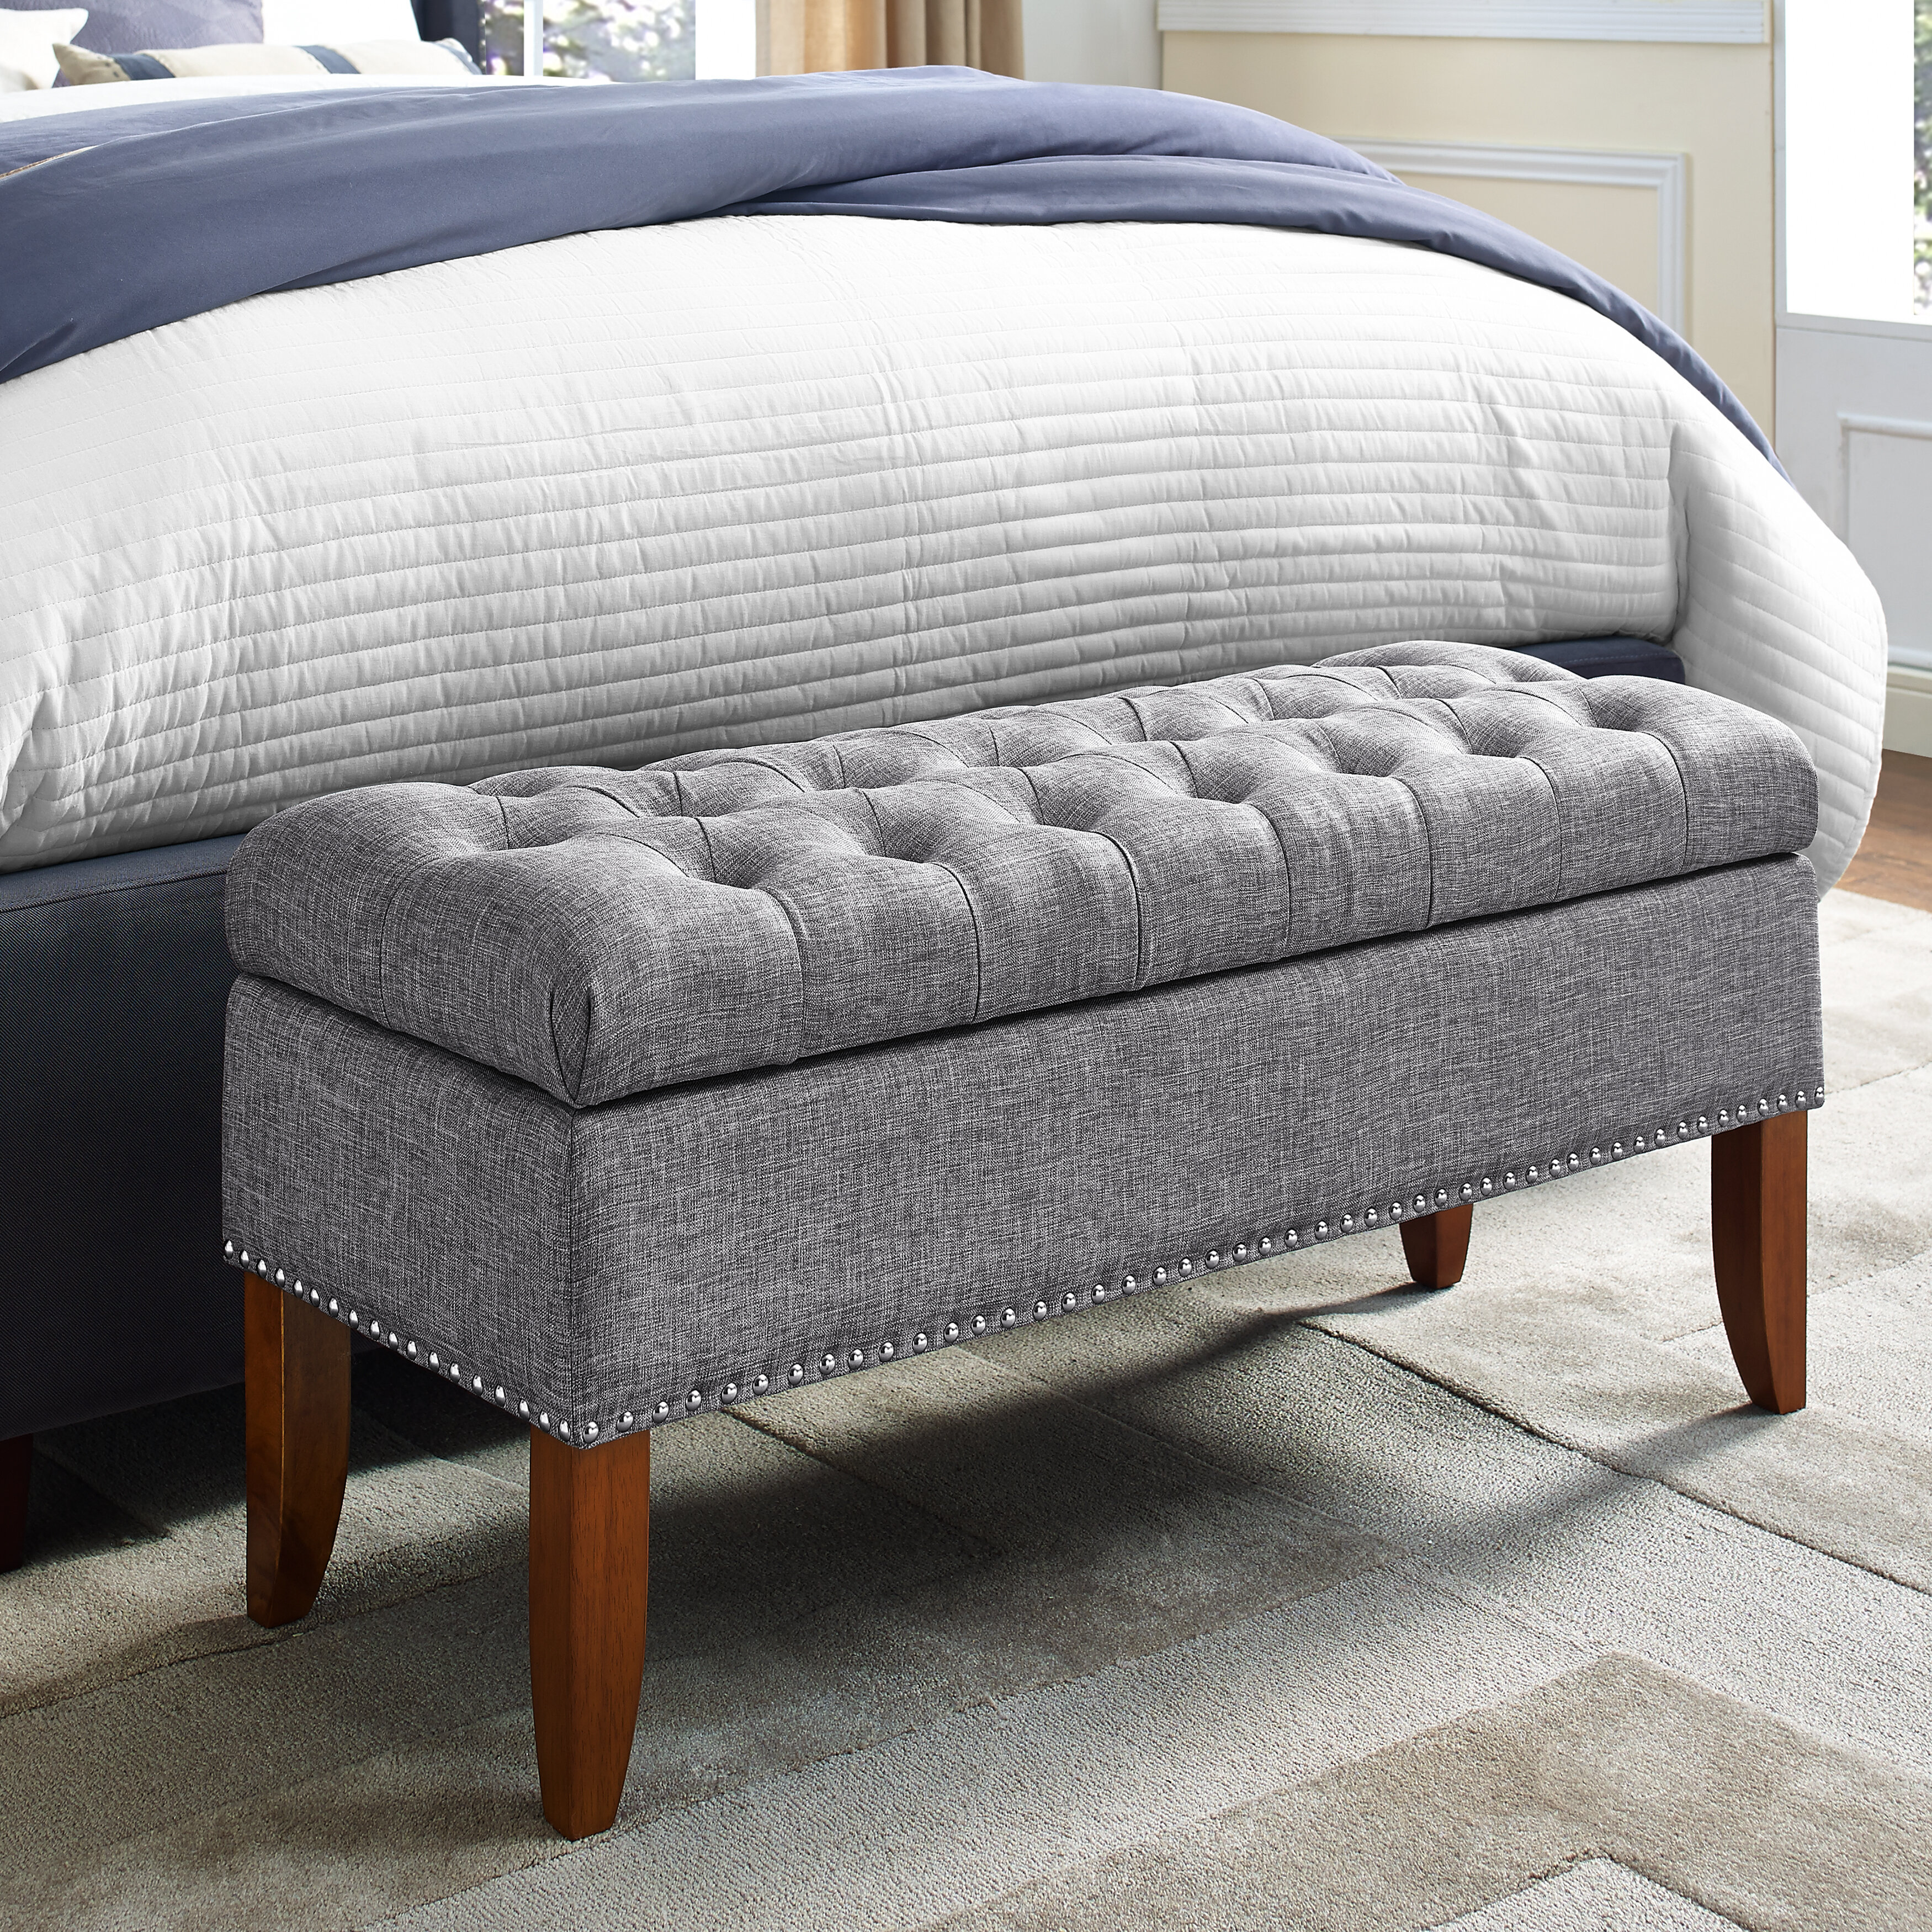 Grey Benches You Ll Love In 2021 Wayfair